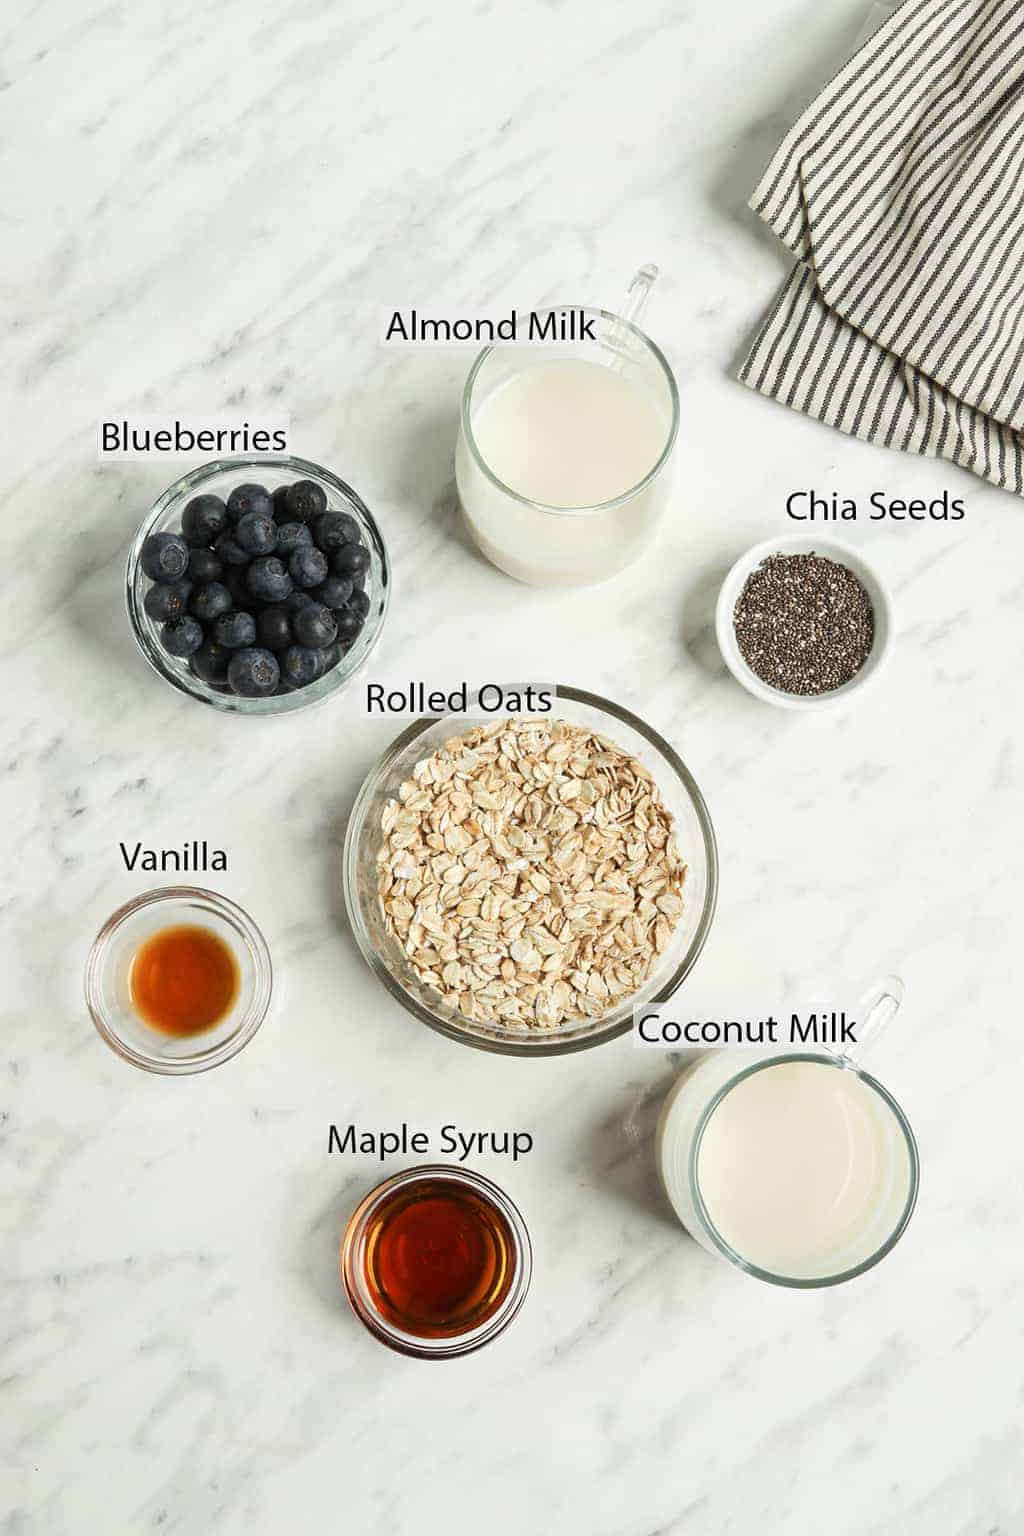 Ingredients for overnight oats measured out and placed on a marble countertop.